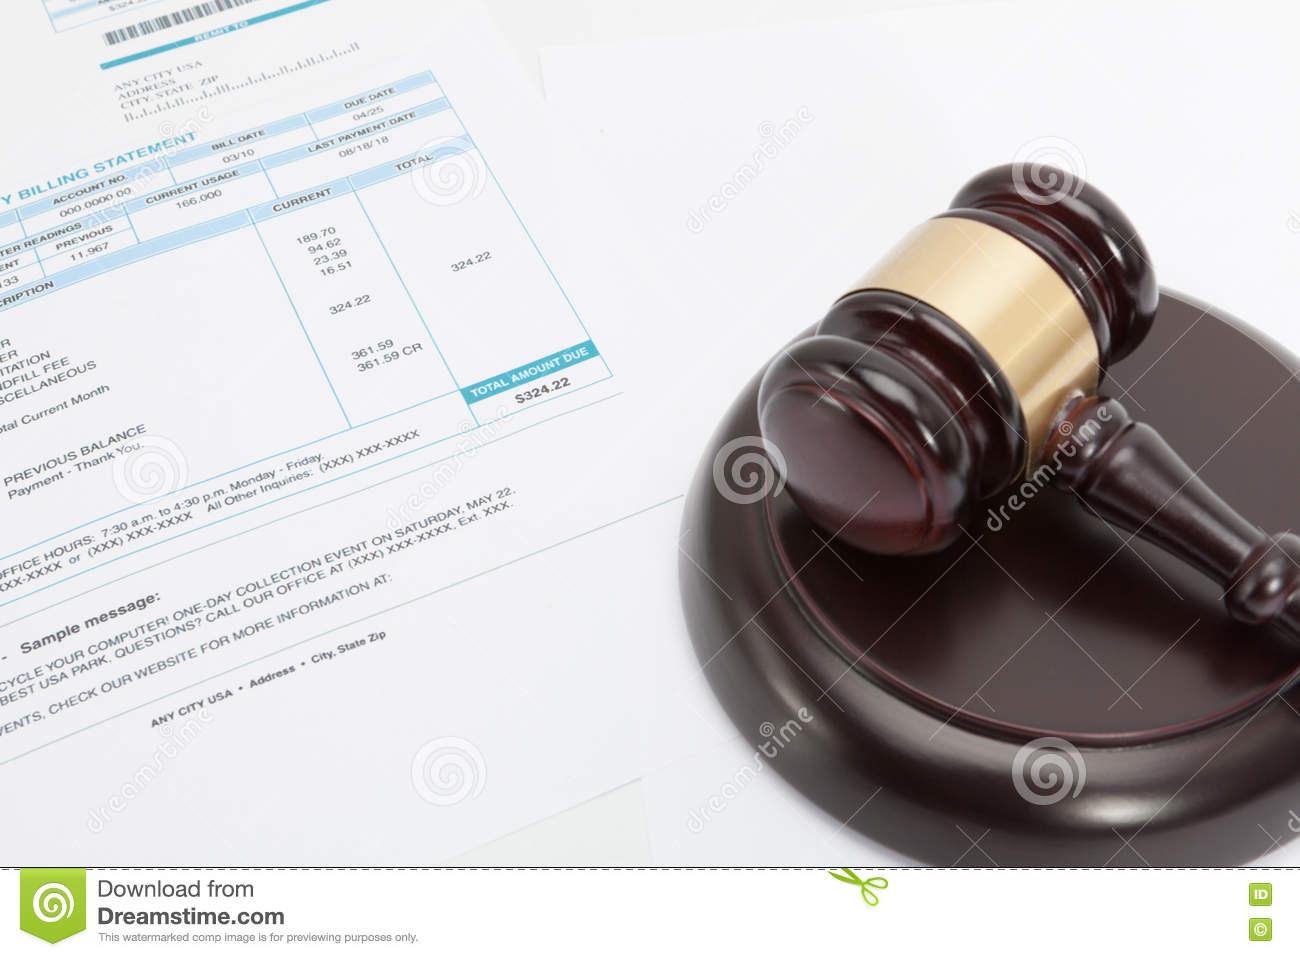 Unpaid Bill With Wooden Gavel Over It Series Stock Photo